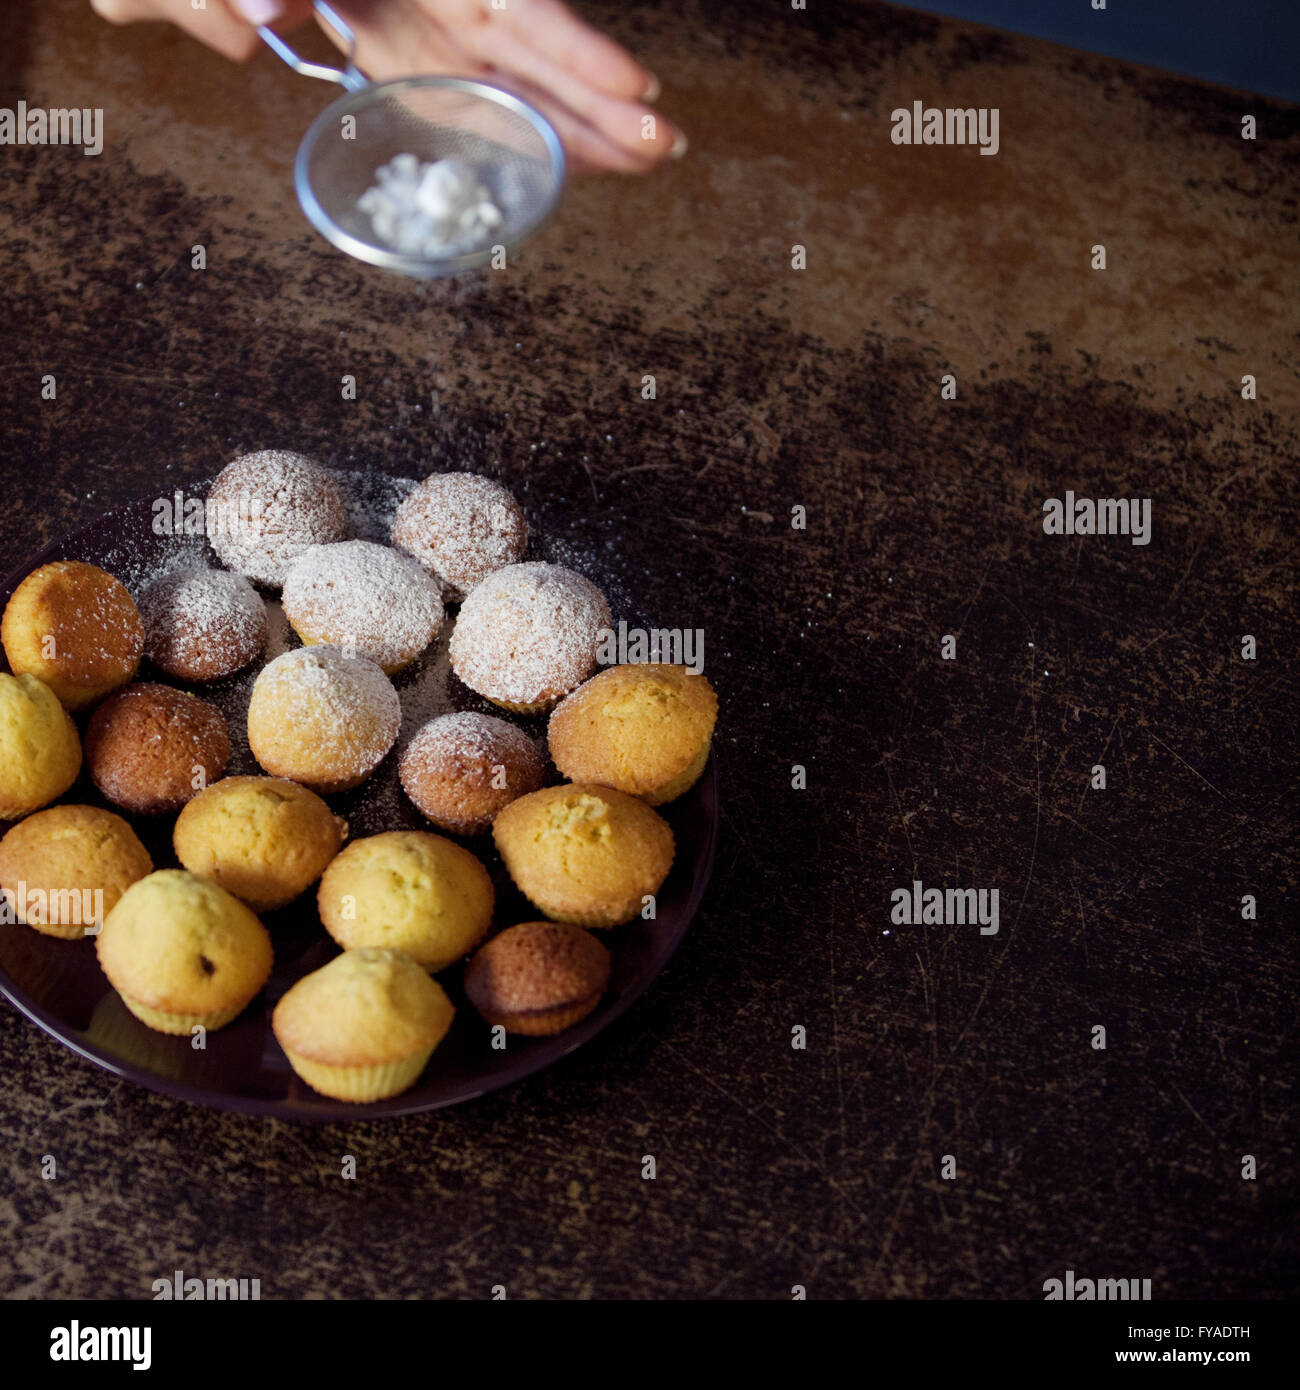 Woman's hand sprinkling icing sugar over fresh muffins. close up - Stock Image